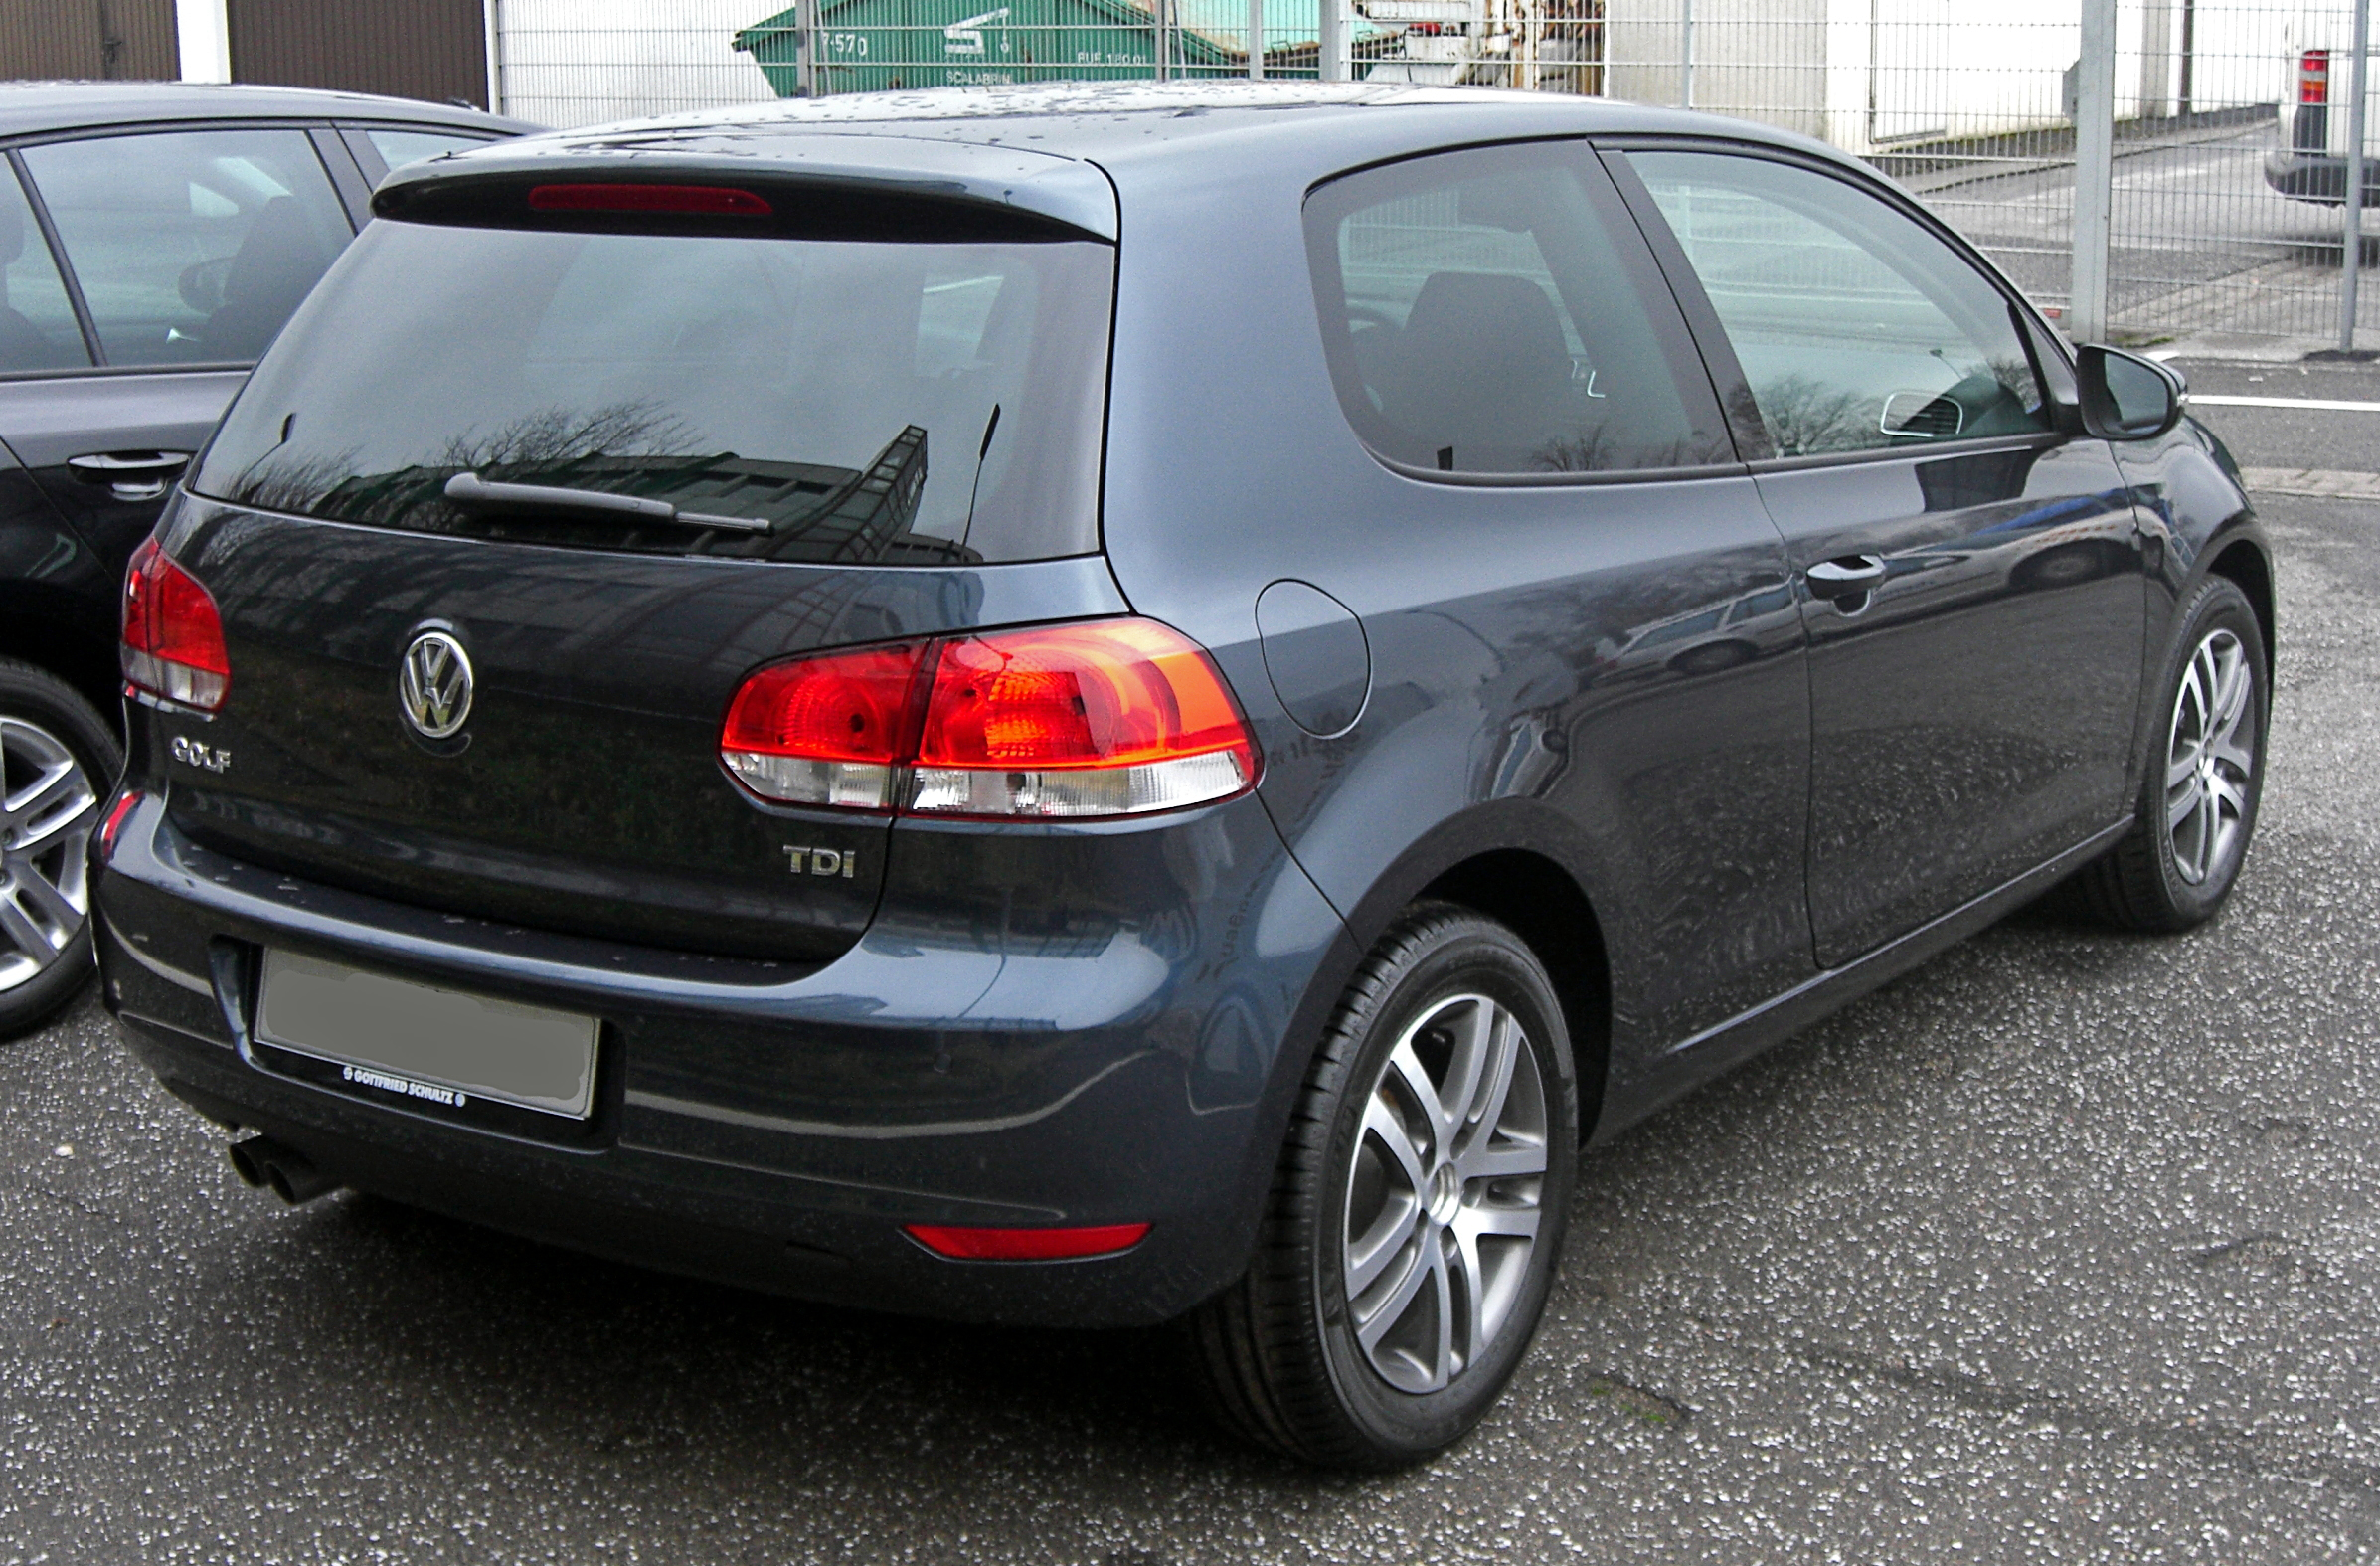 volkswagen golf i wikipedia autos post. Black Bedroom Furniture Sets. Home Design Ideas